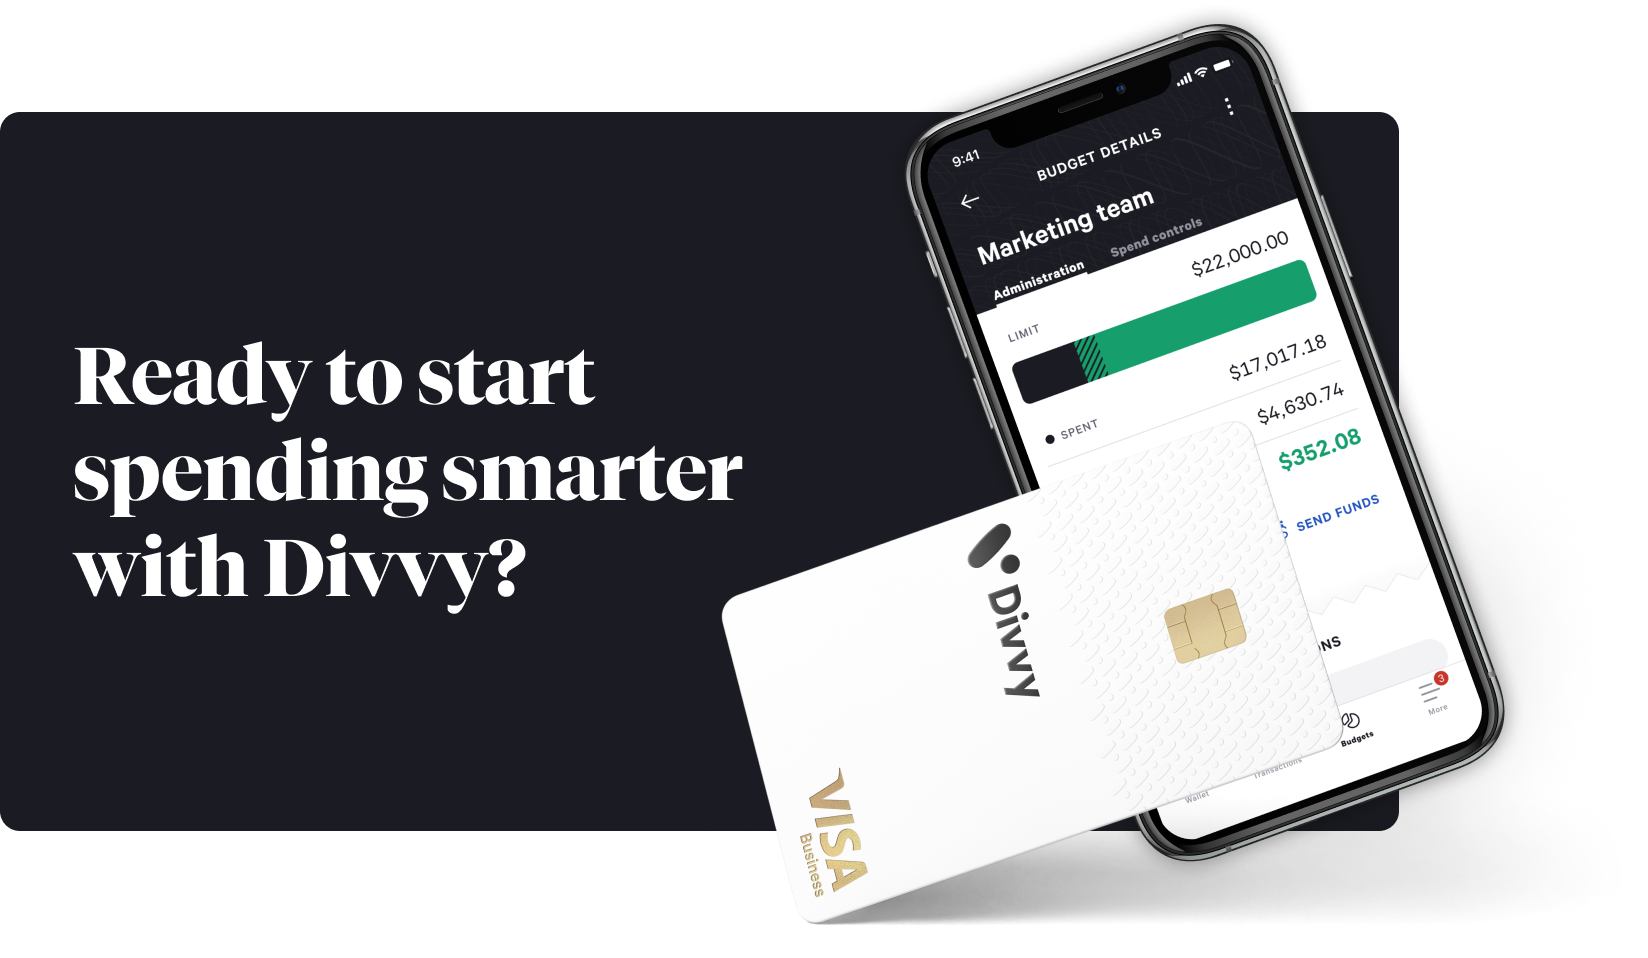 ready to start spending smarter with divvy?